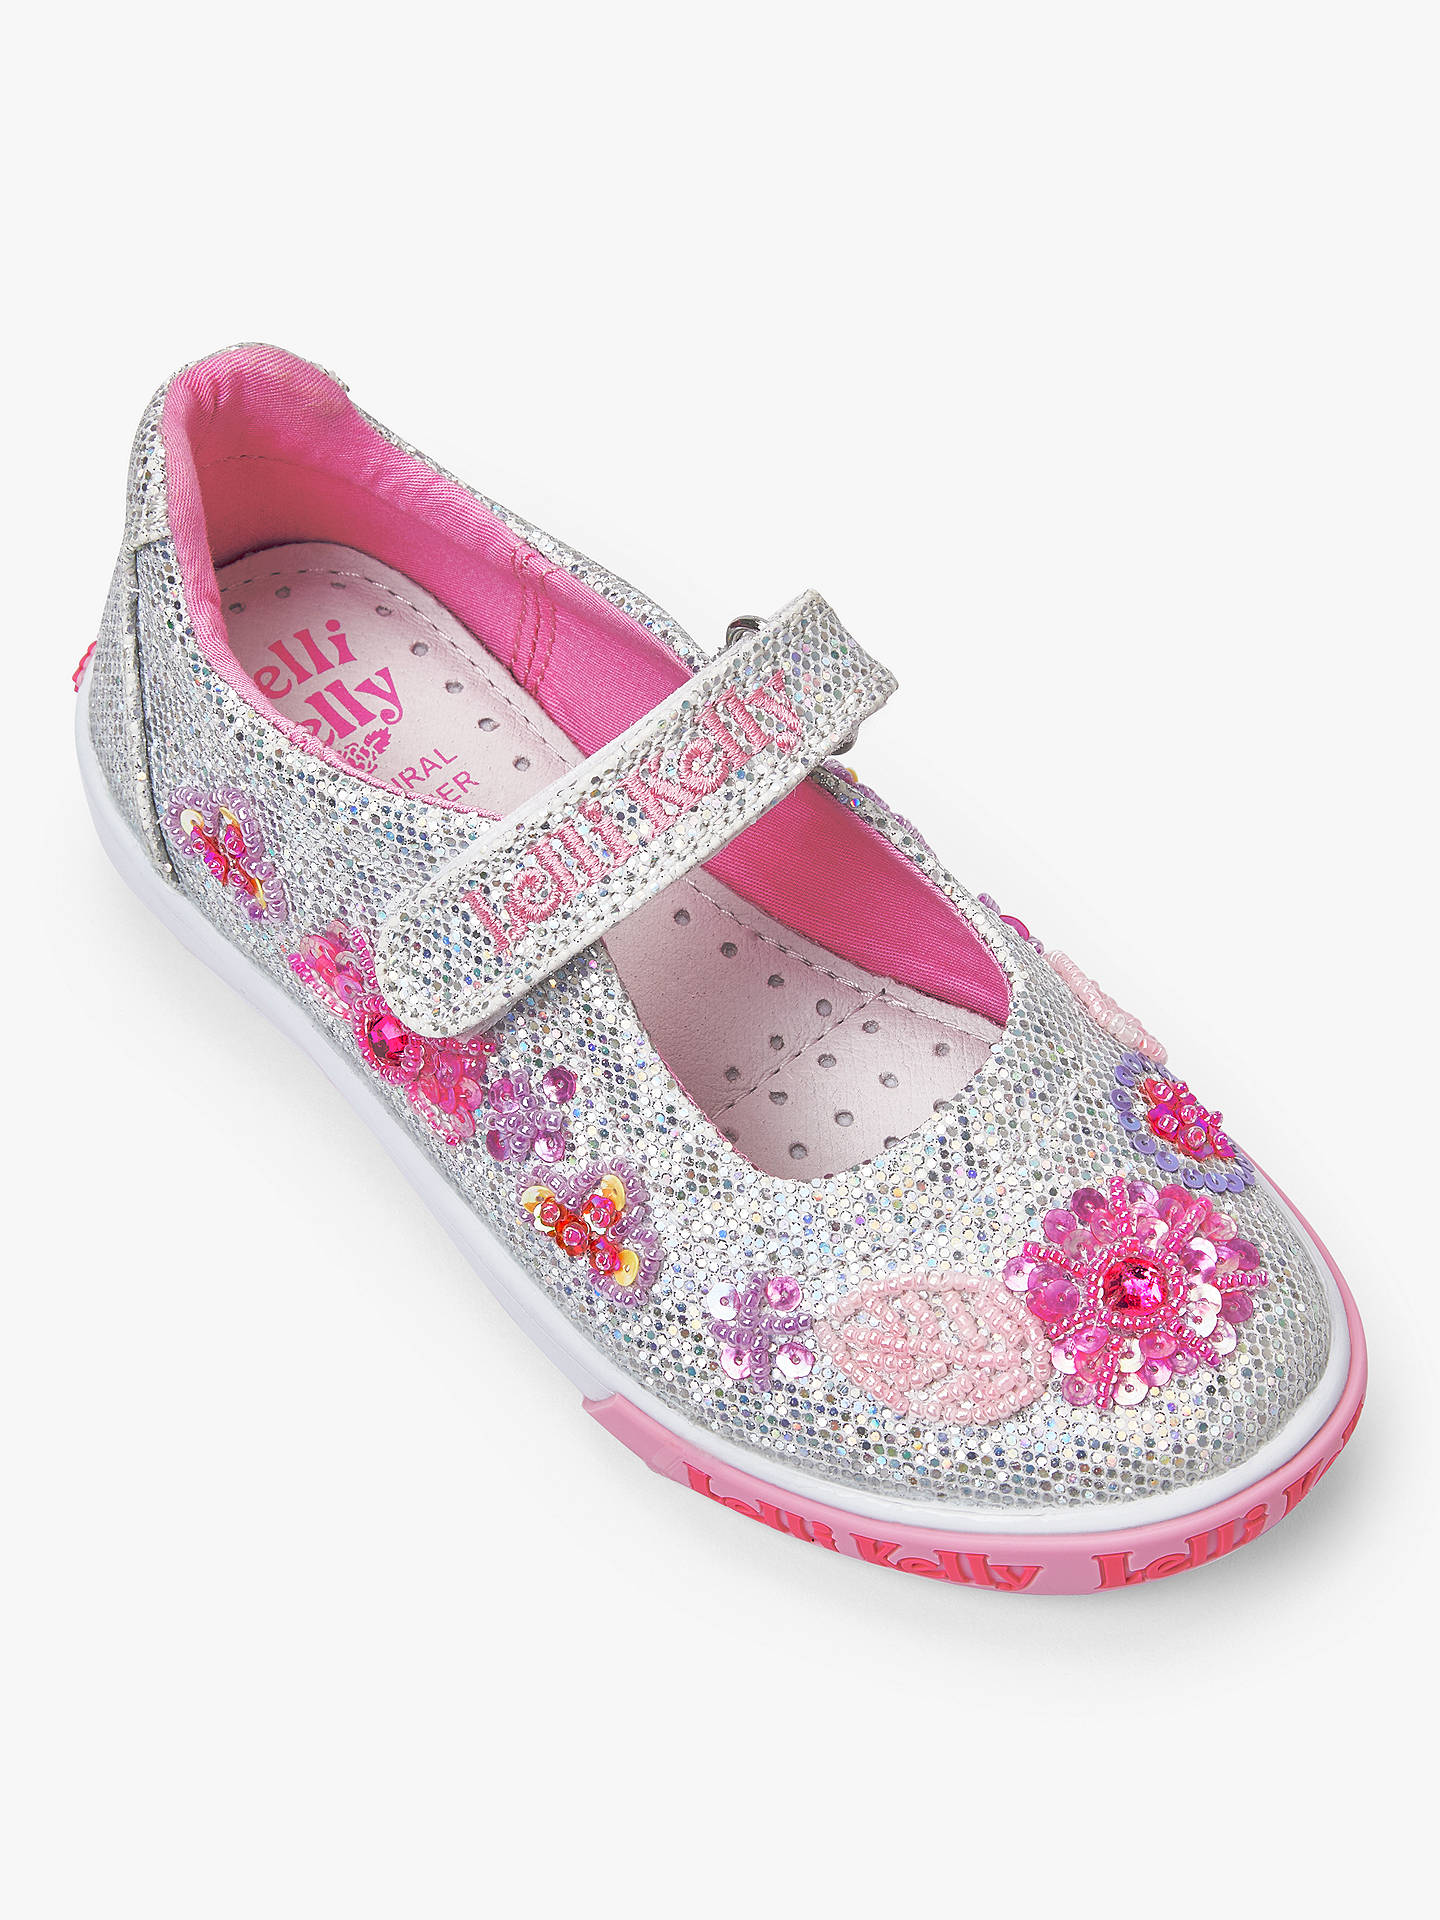 0d153aa7cada Buy Lelli Kelly Children's Glitter Daisy Dolly Shoes, Silver, 28 Online at  johnlewis.